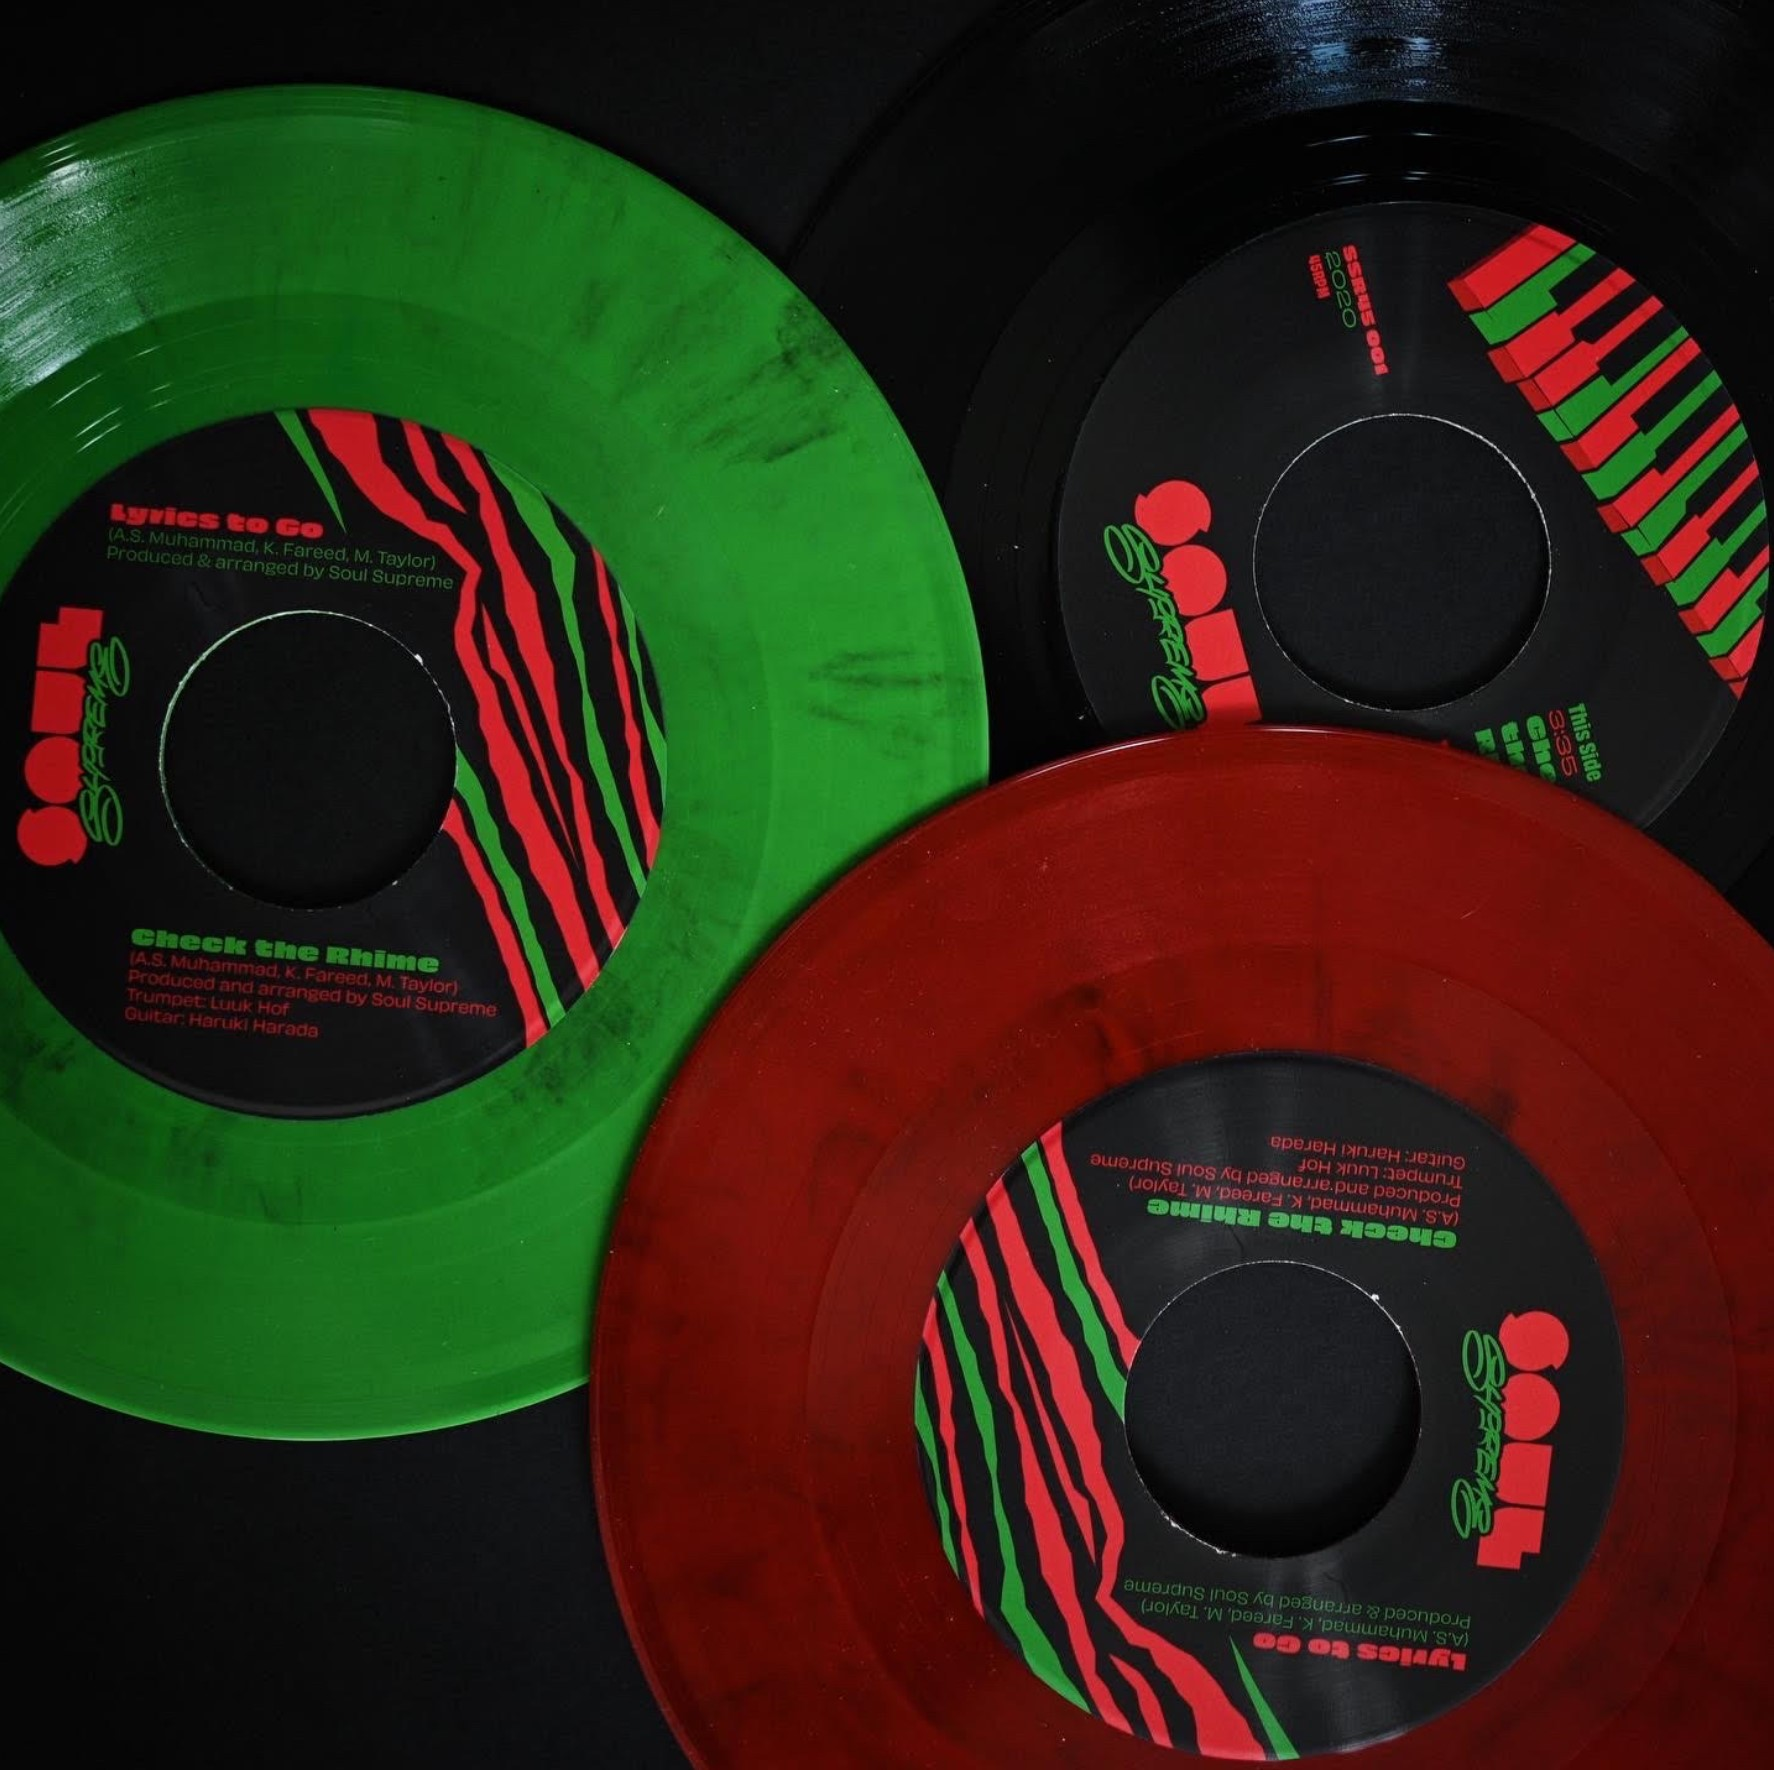 Soul Supreme's Tribute to A Tribe Called Quest ('Check The Rhime' b/w 'Lyrics To Go' 45)